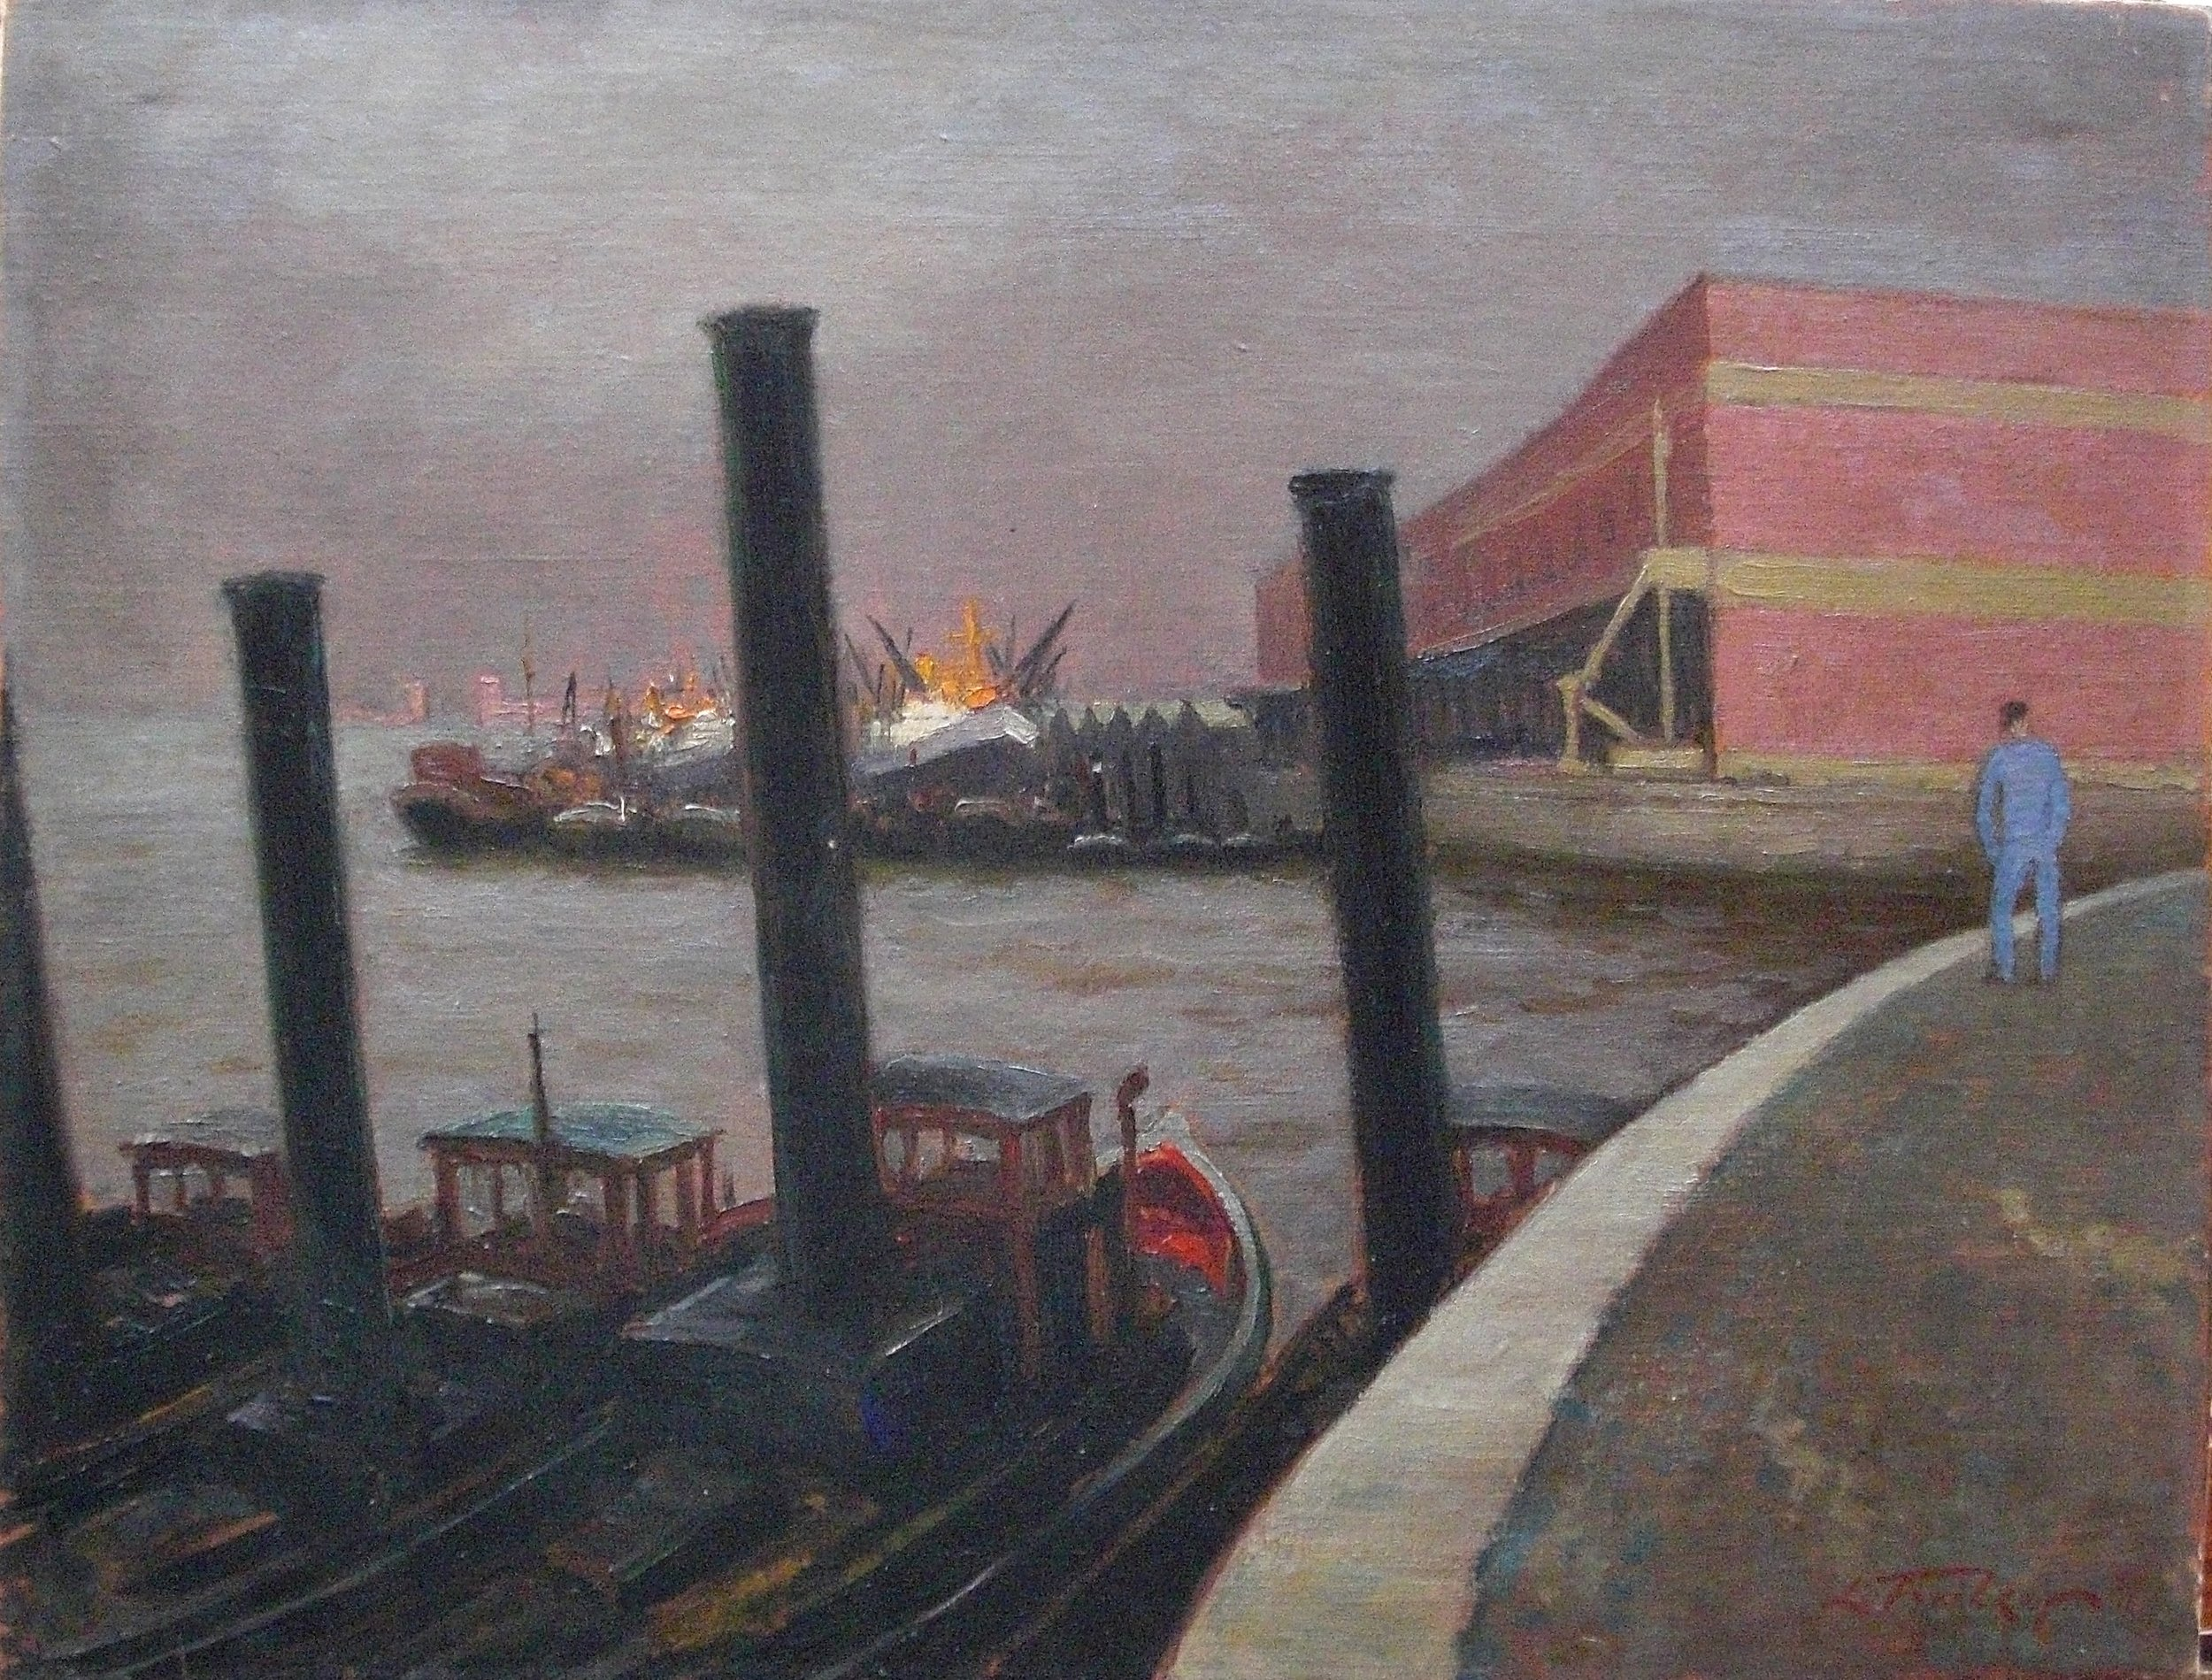 Tugs in the port. Oil on canvas. Signed. Size: 65 x 50 cm.